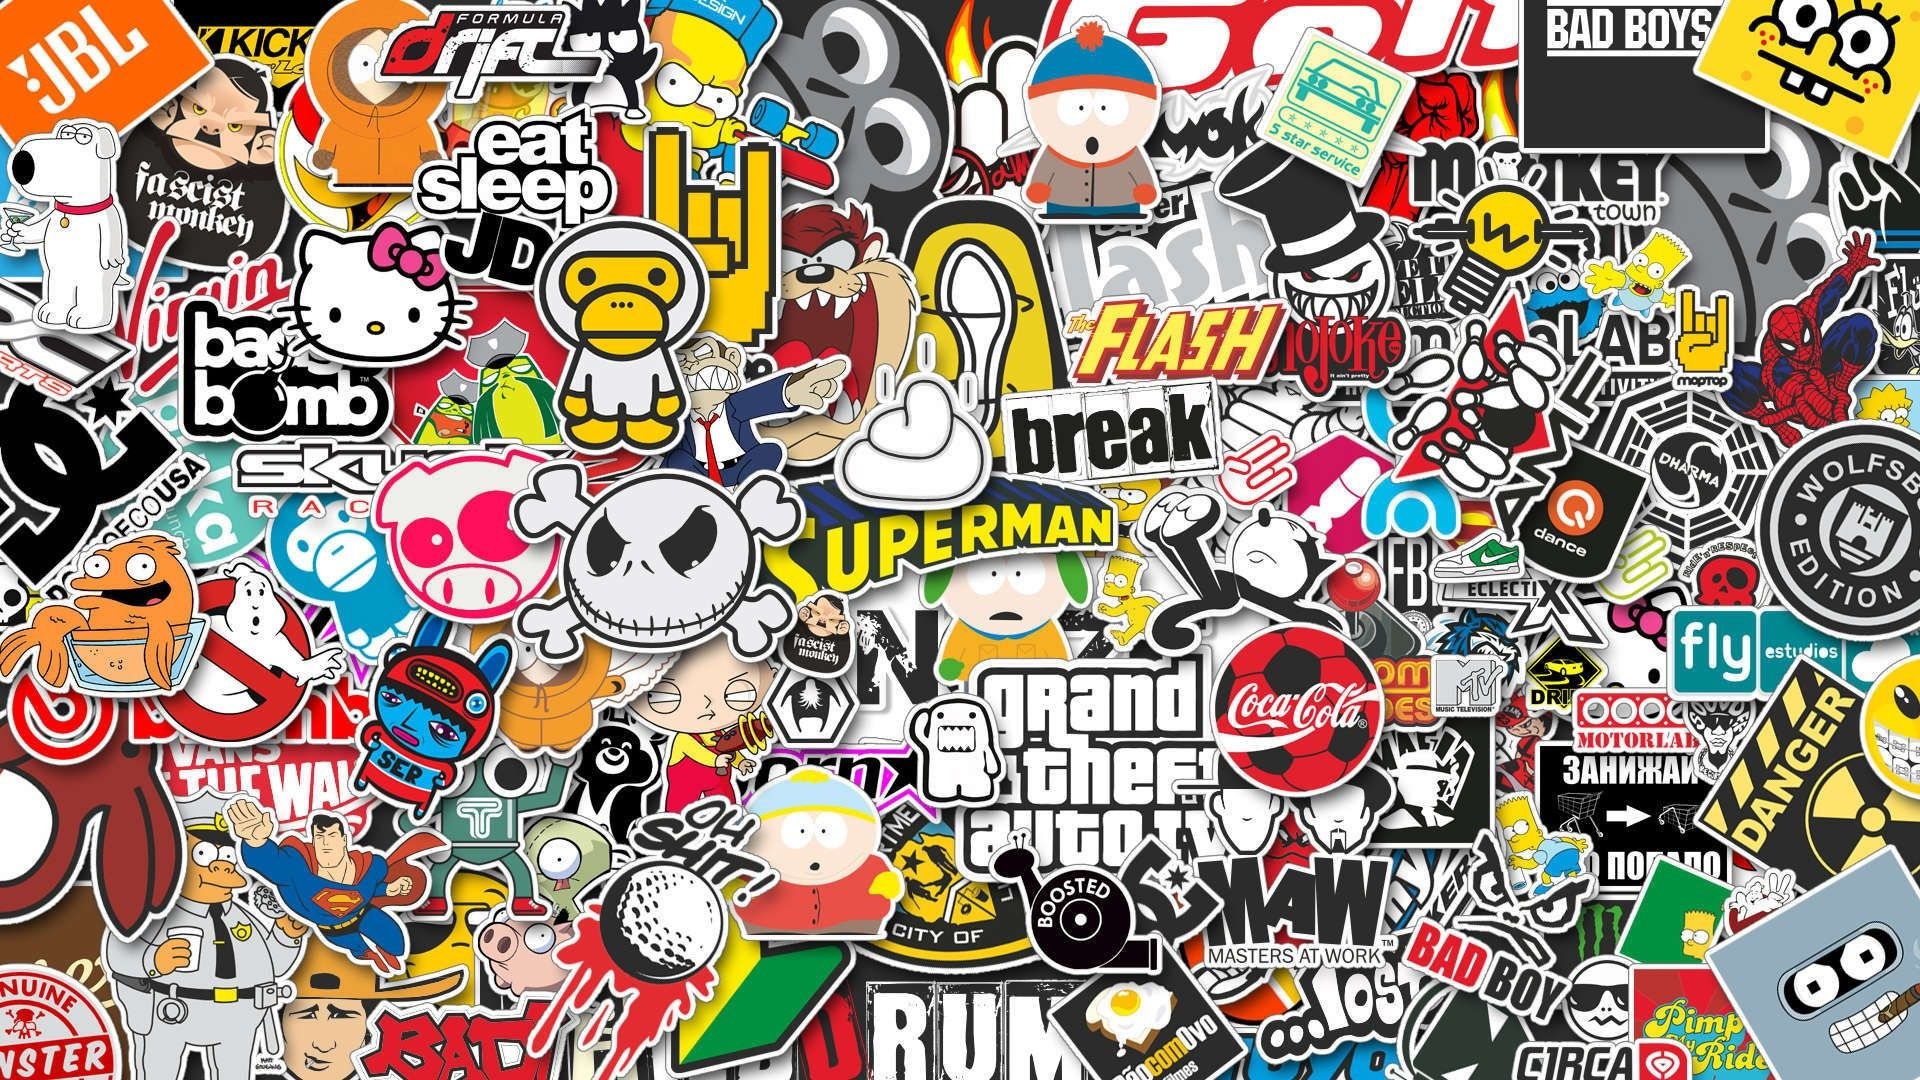 1920x1080 px sticker bomb wallpaper full hd pictures by gregson mason